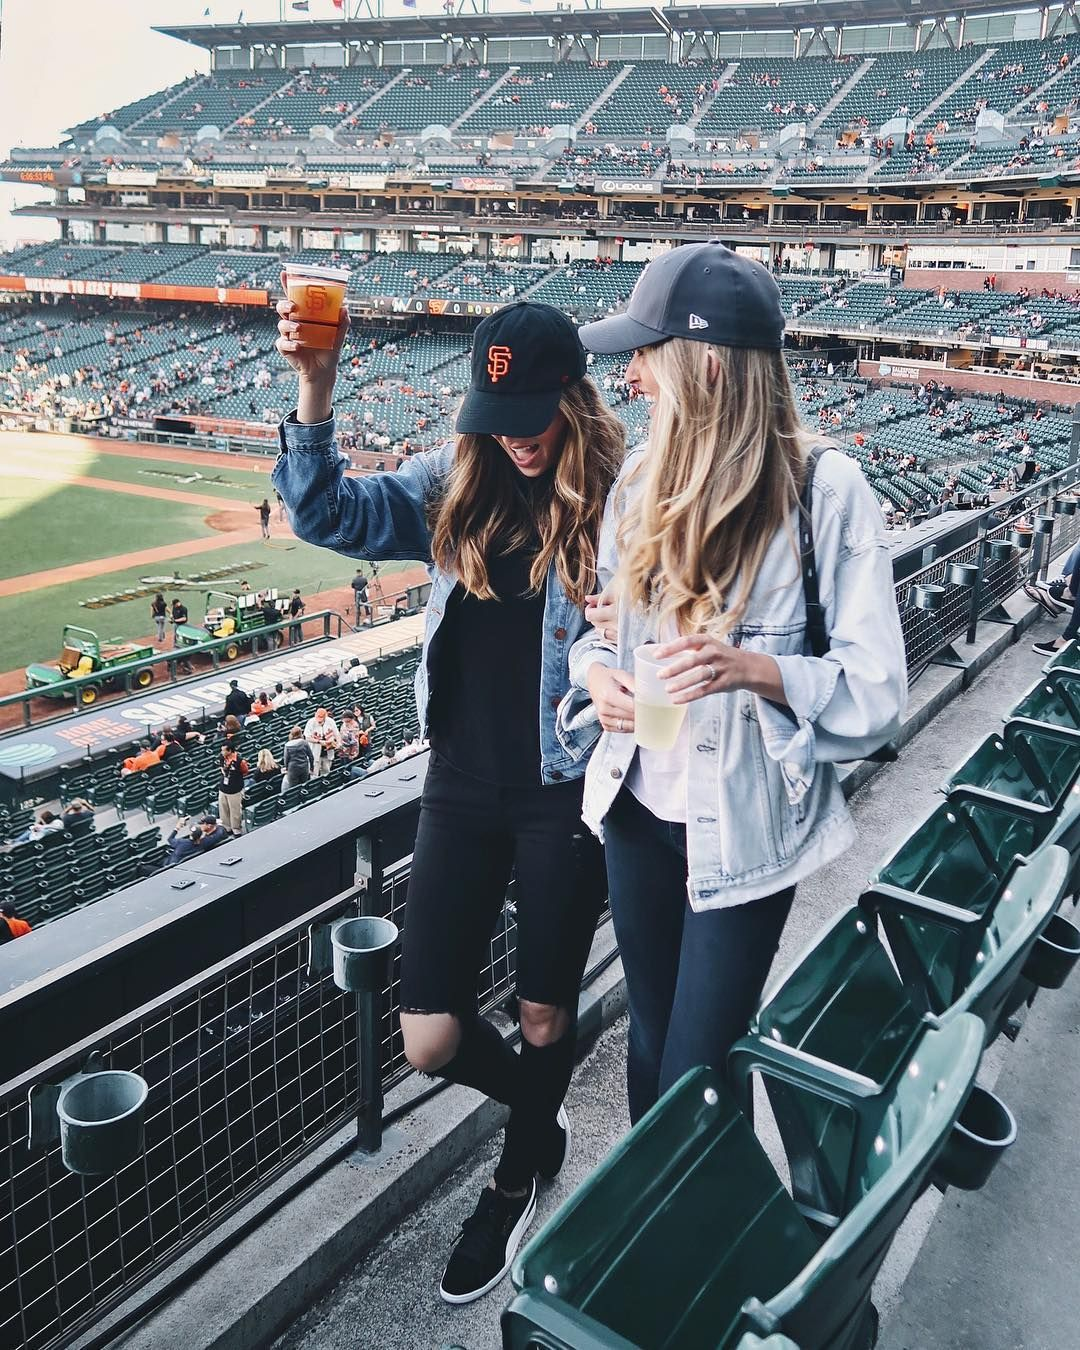 Baseball game outfit inspiration | My Style | Pinterest | Baseball game outfits Games outfits ...